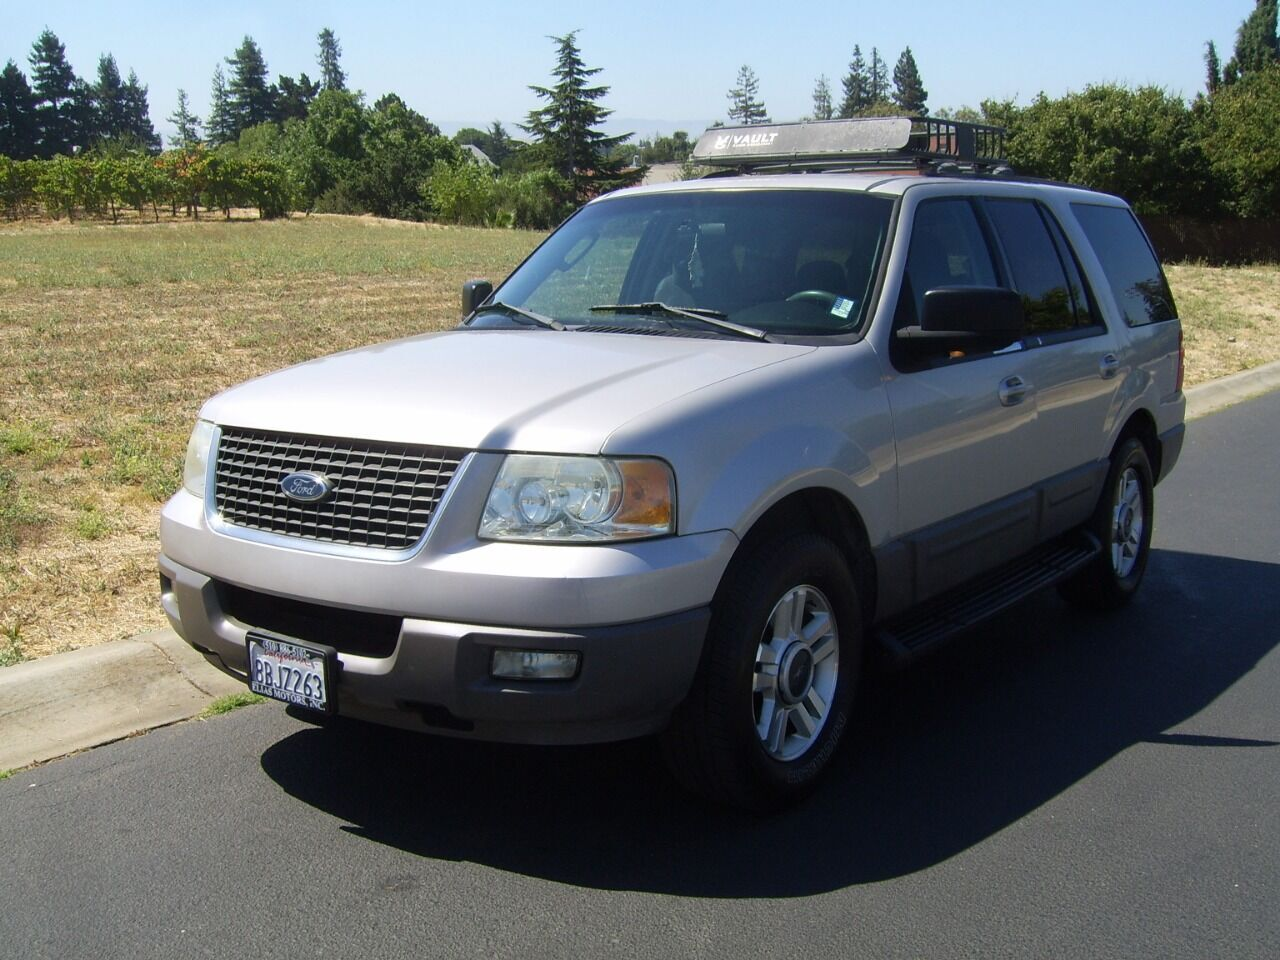 2003 Ford Expedition Xlt 4dr Suv